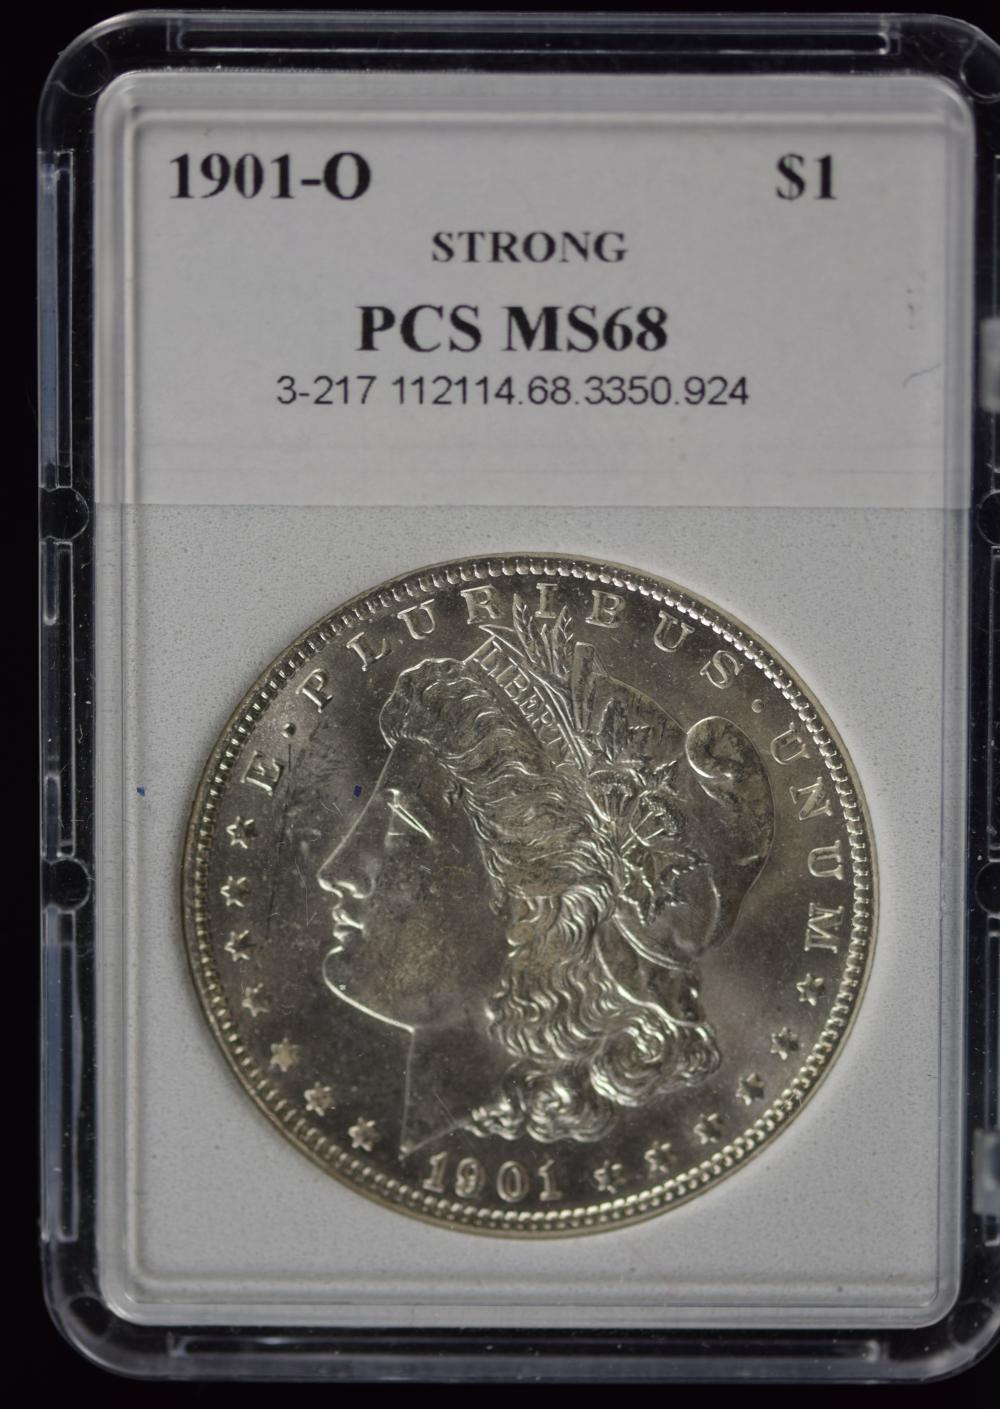 1901-O Morgan Dollar PCS MS-68 Gorgeous